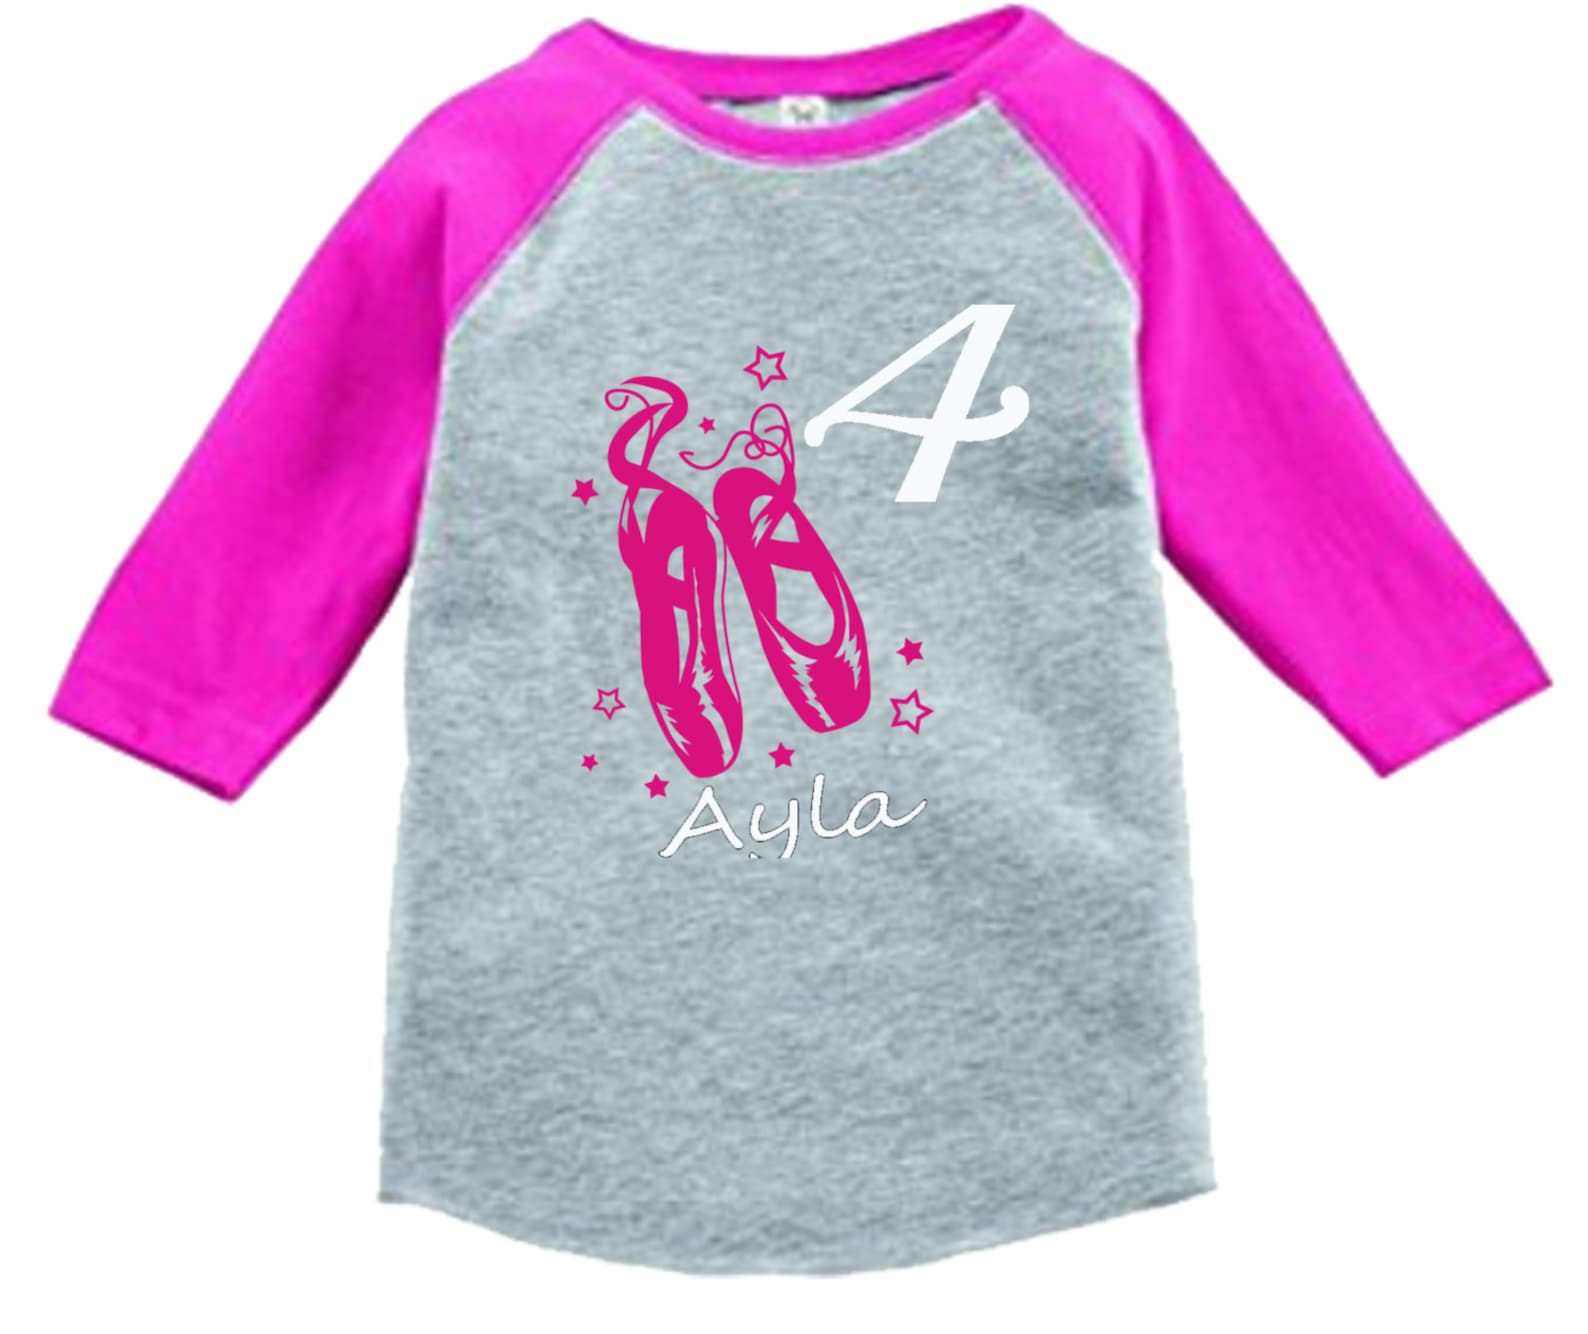 ballet dance shoes birthday shirt - 3/4 or long sleeve relaxed fit raglan baseball shirt - any age and name - pick your colors!